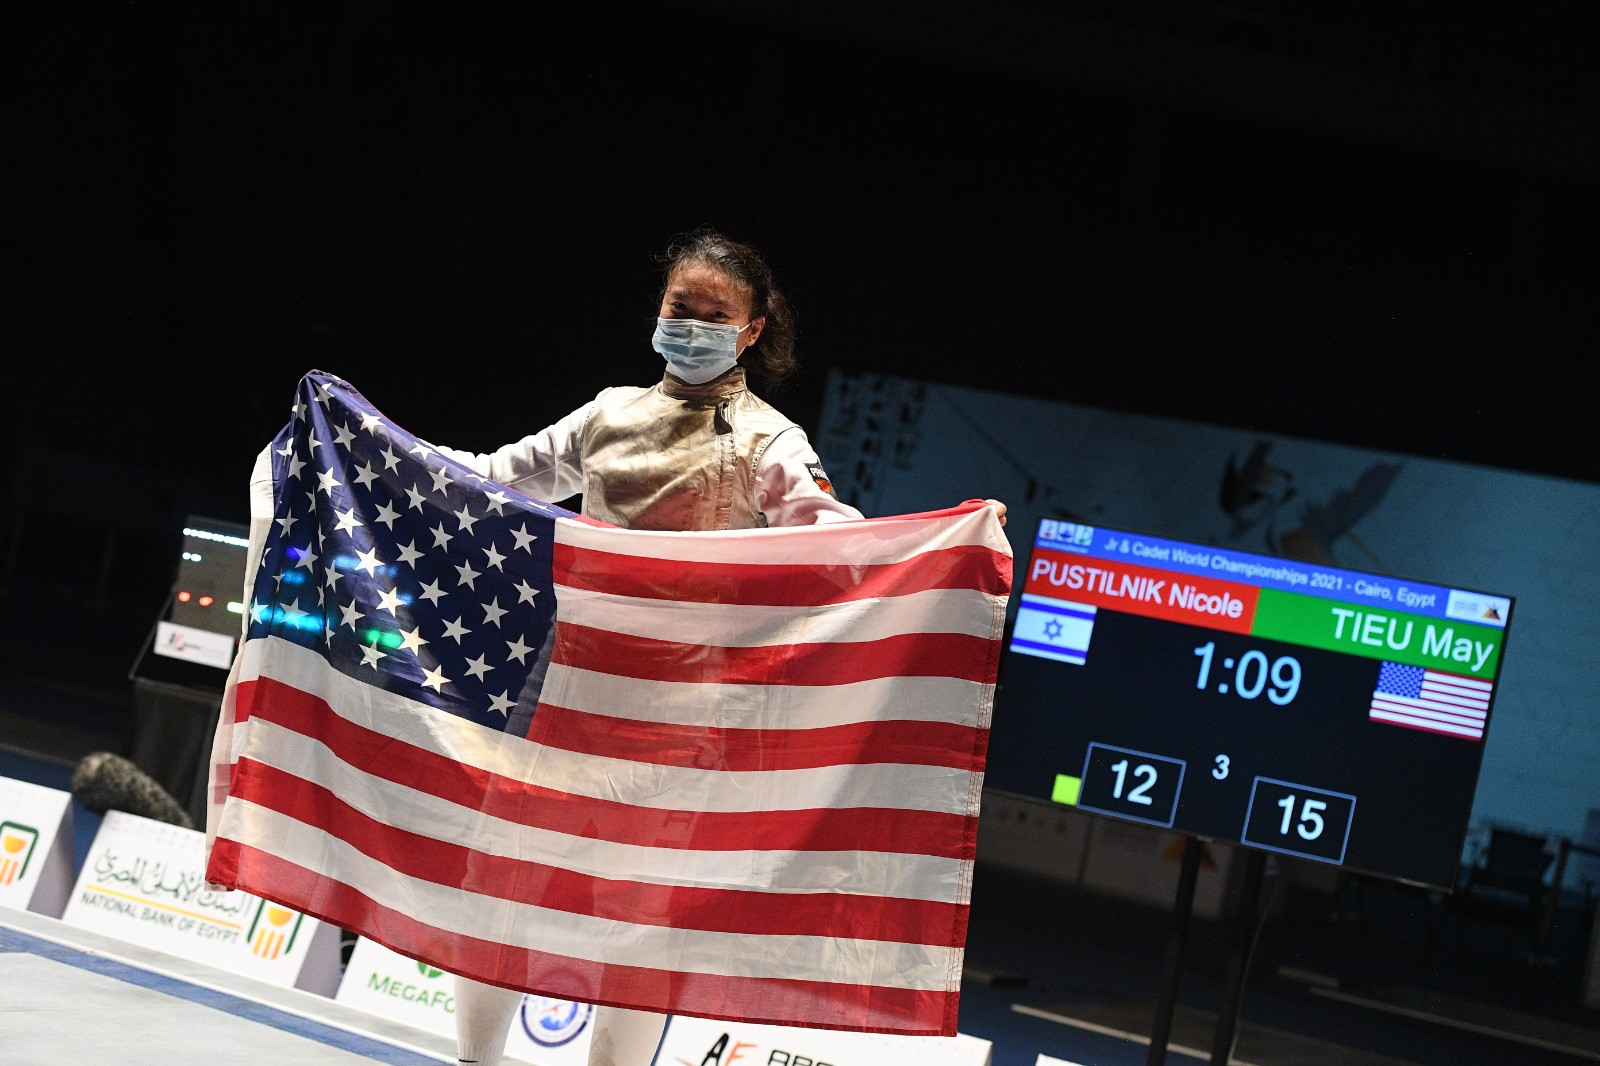 Kozlov and Tieu win junior foil world titles in Cairo